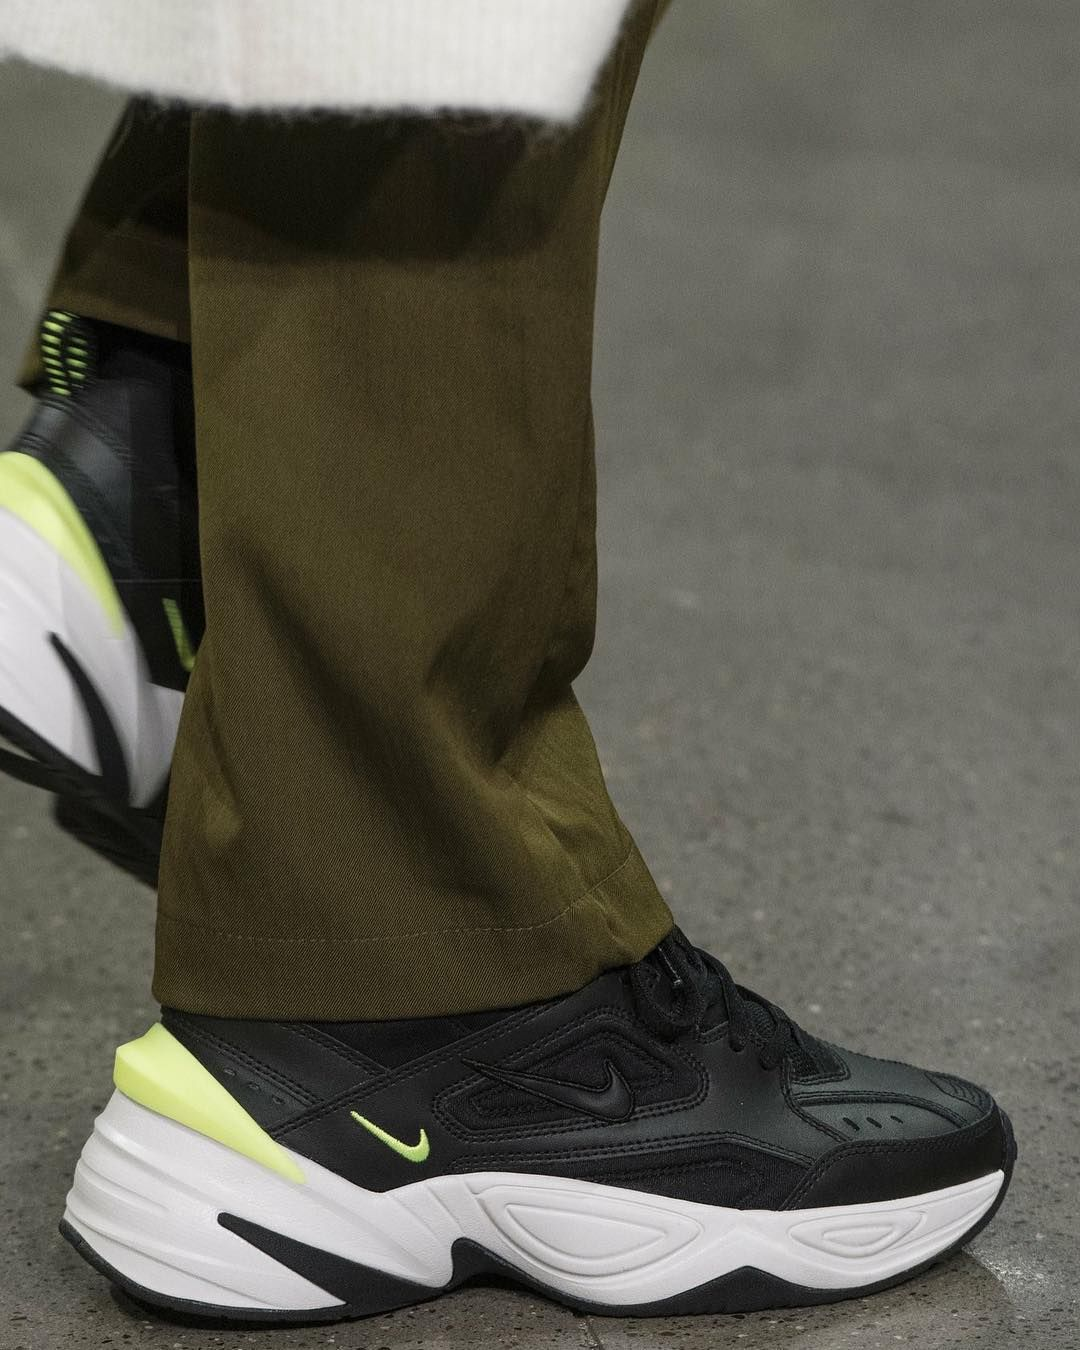 Nike To Introduce 'M2K Techno' Dad Shoe Silo? | Upcoming Sneaker Releases |  The Sole Supplier